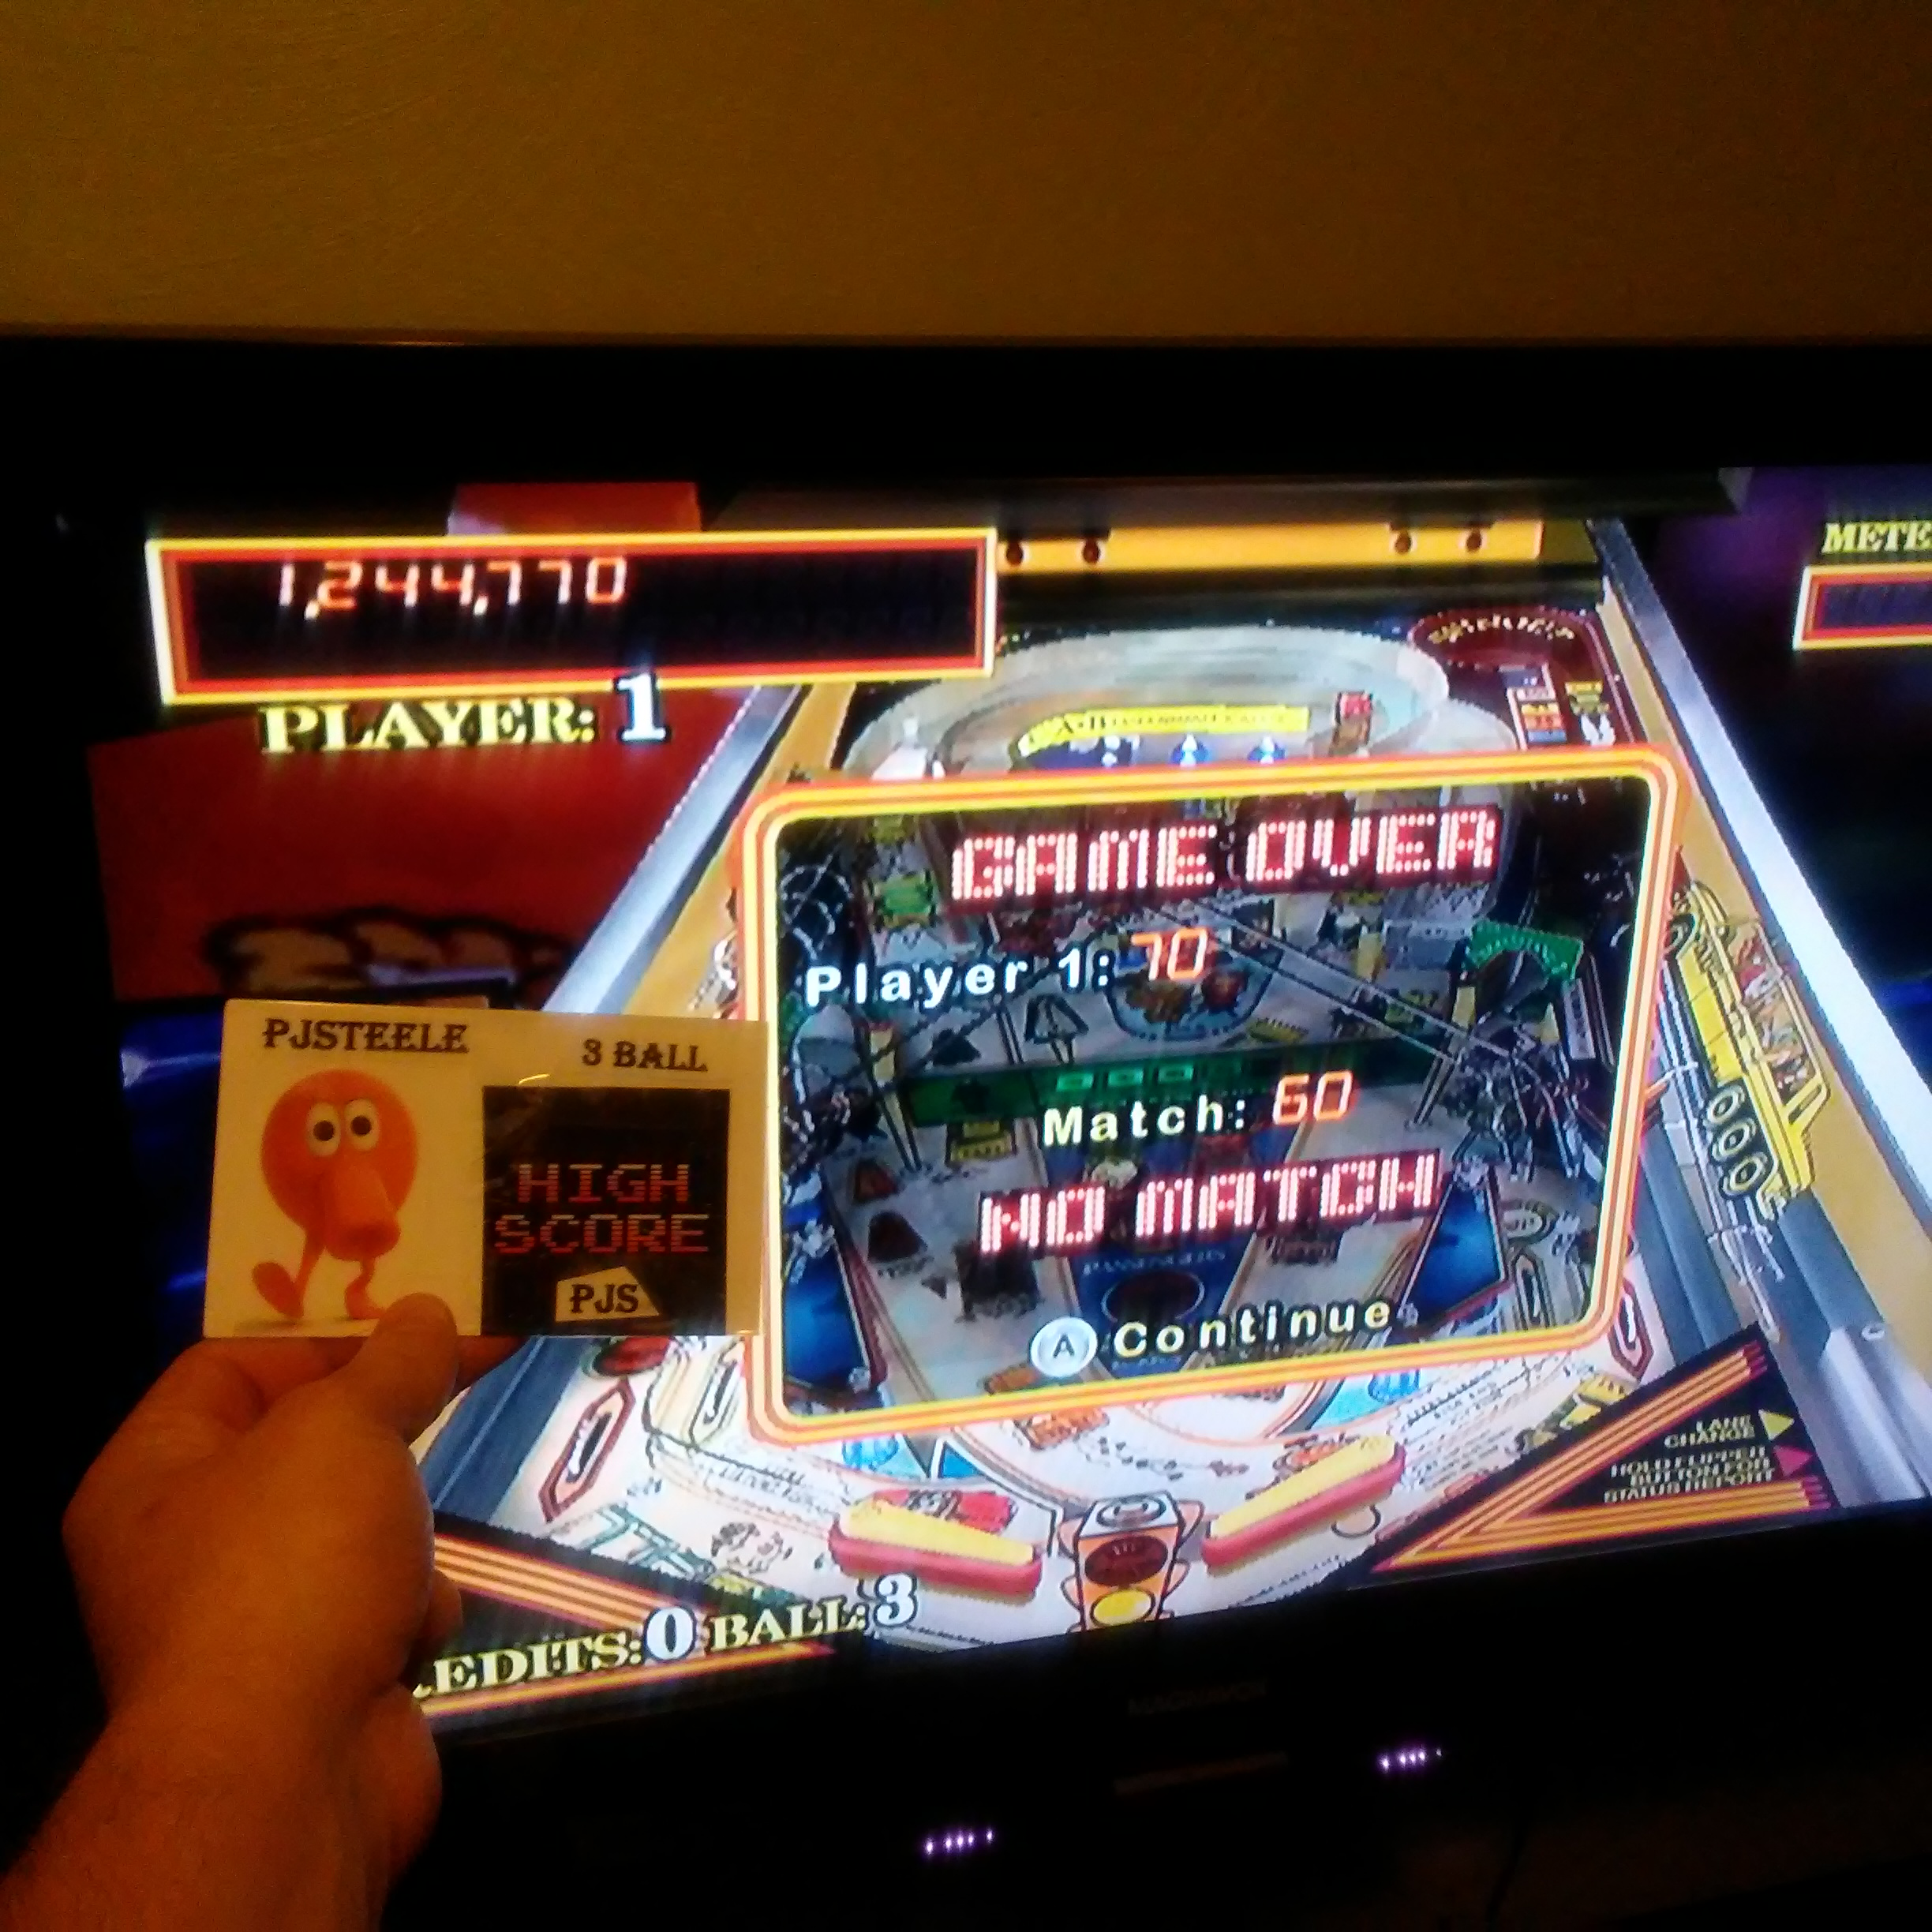 Pjsteele: Pinball Hall of Fame: The Williams Collection: Taxi (Wii) 1,244,770 points on 2018-02-17 23:29:45